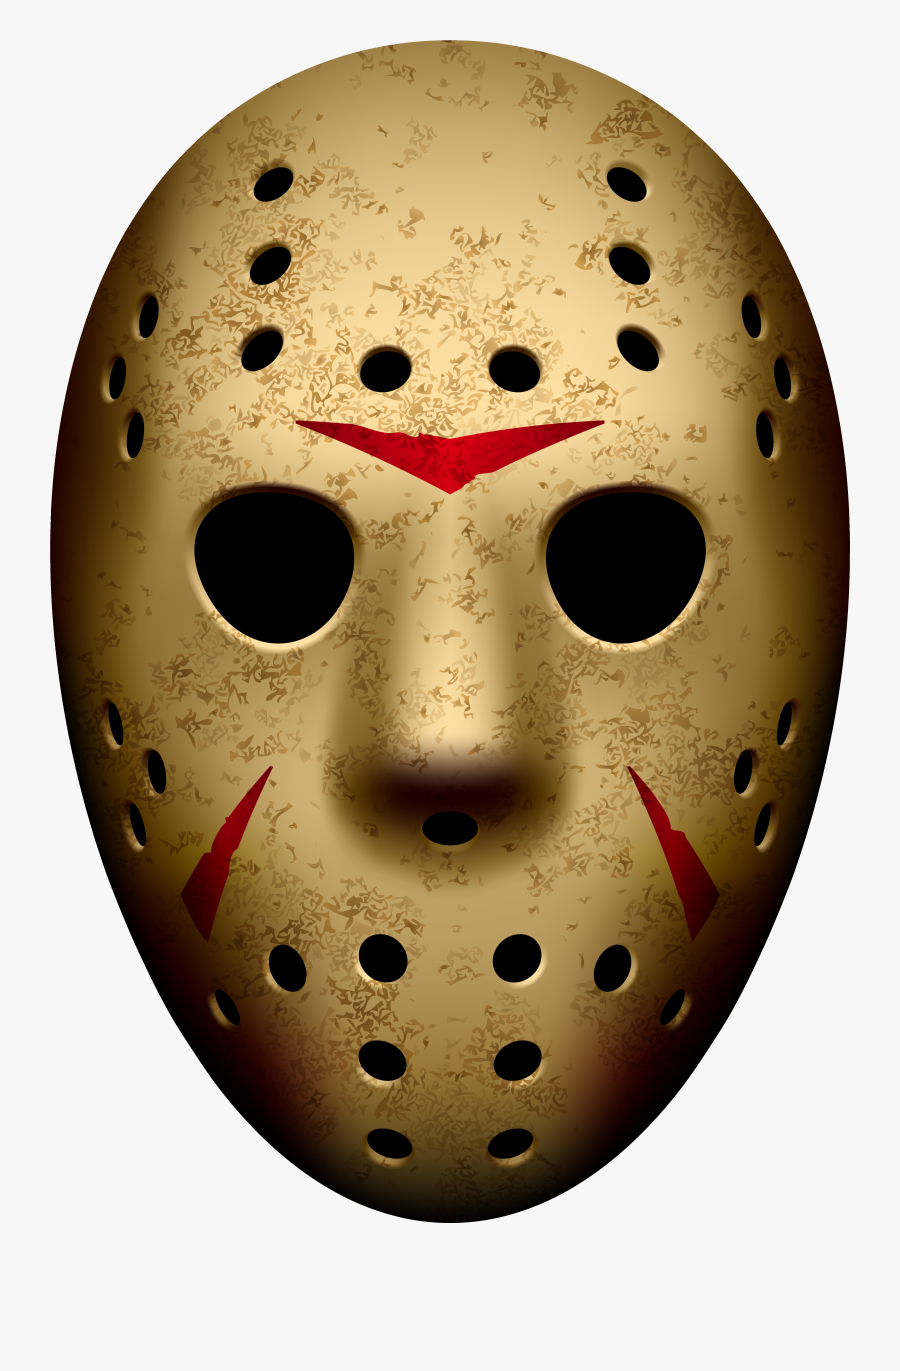 Jason Mask Friday The 13th Png Clip Art Image.